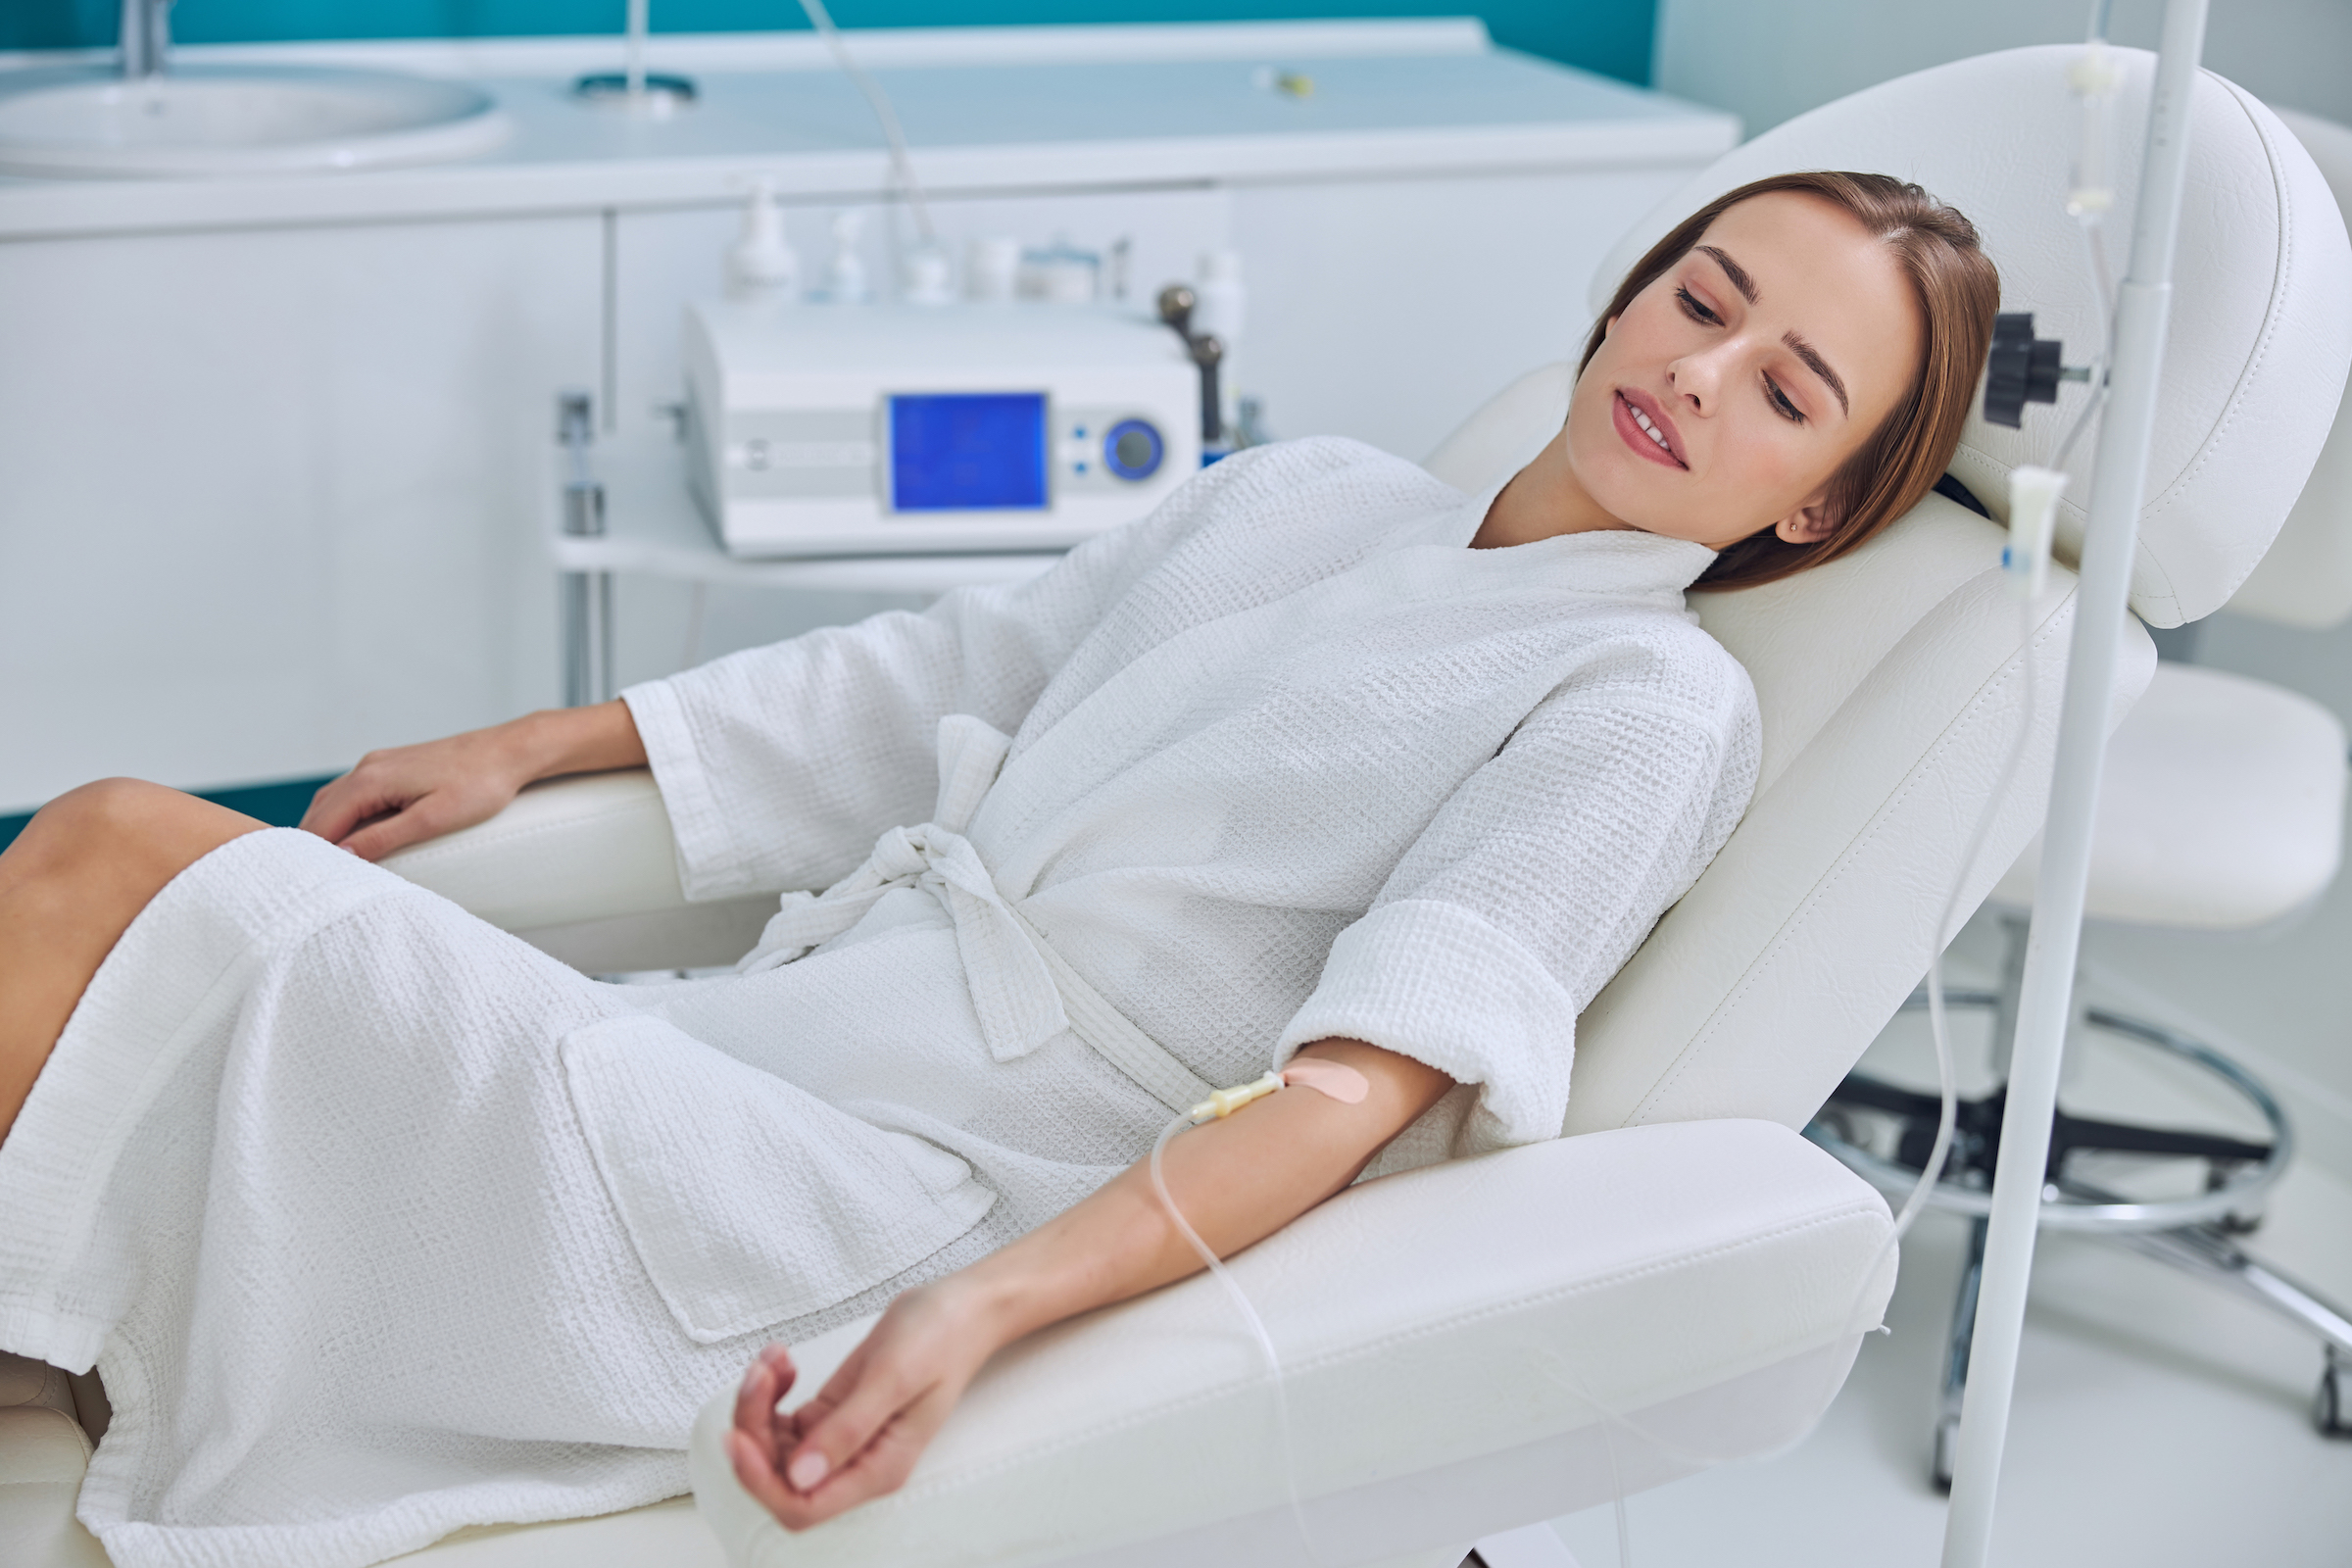 7 Reasons Why You Need IV Drip Therapy